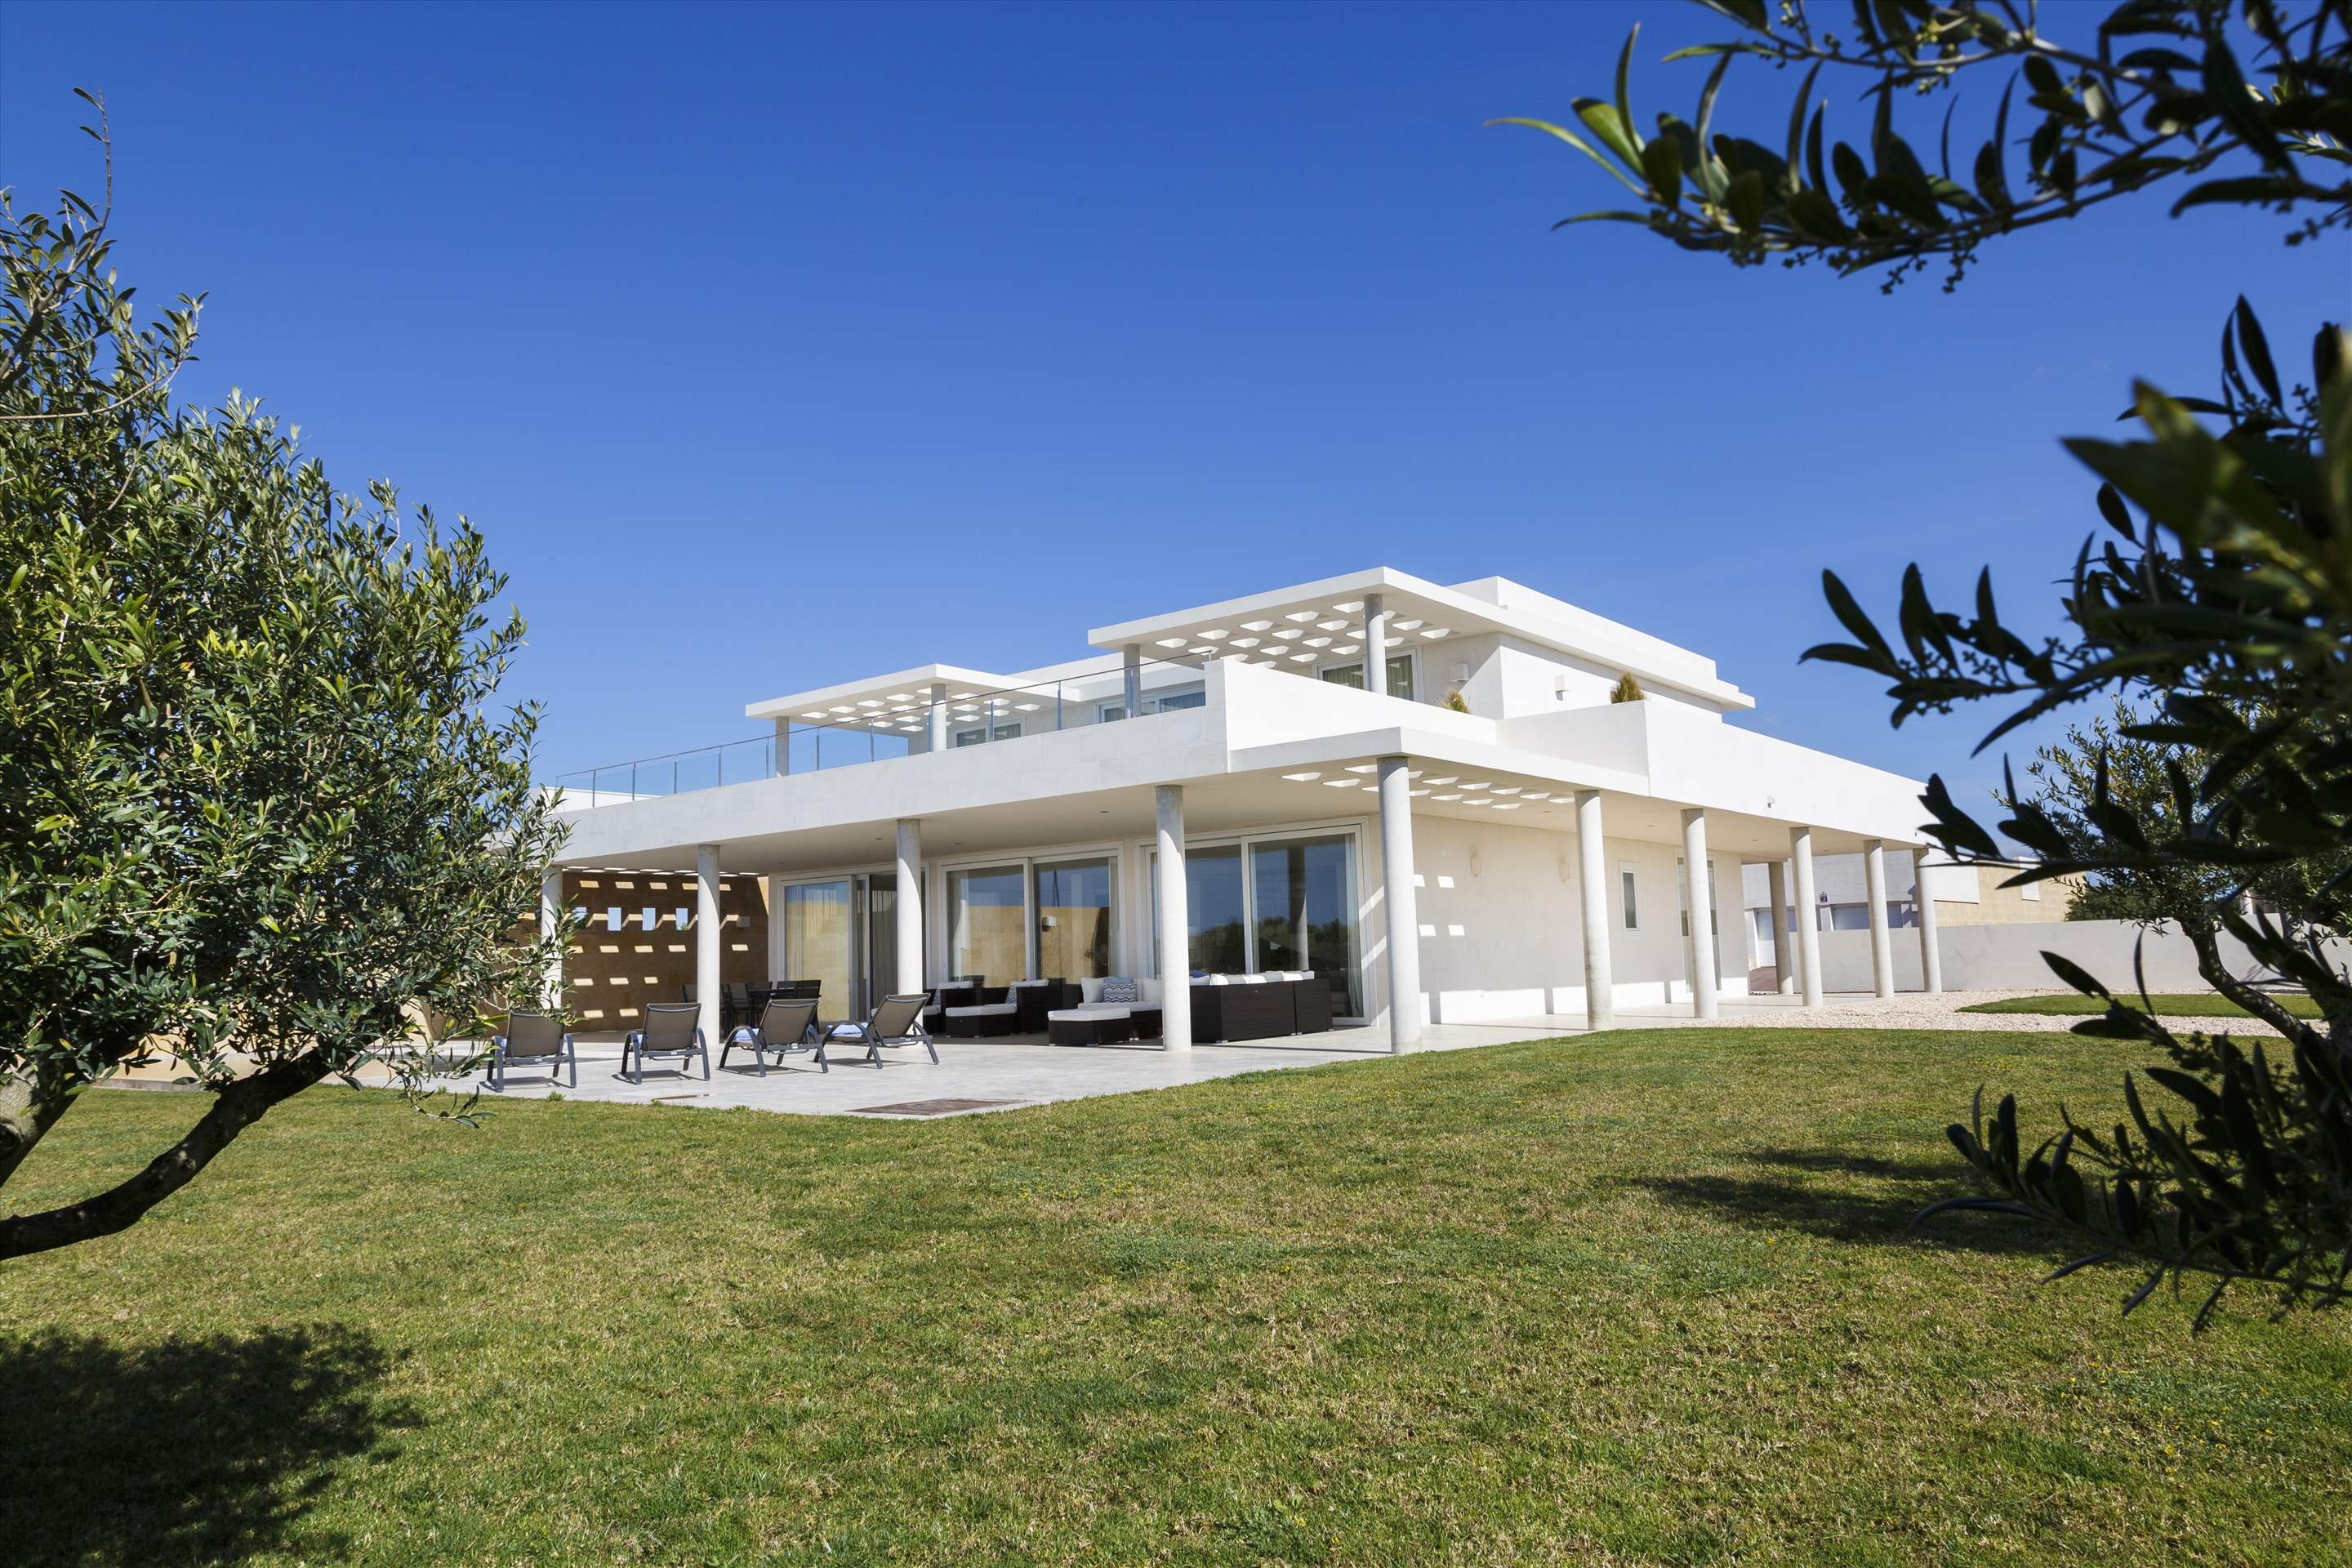 Binibeca Hills , 5 bedroom, 5 bedroom villa in Mahon, San Luis & South East, Menorca